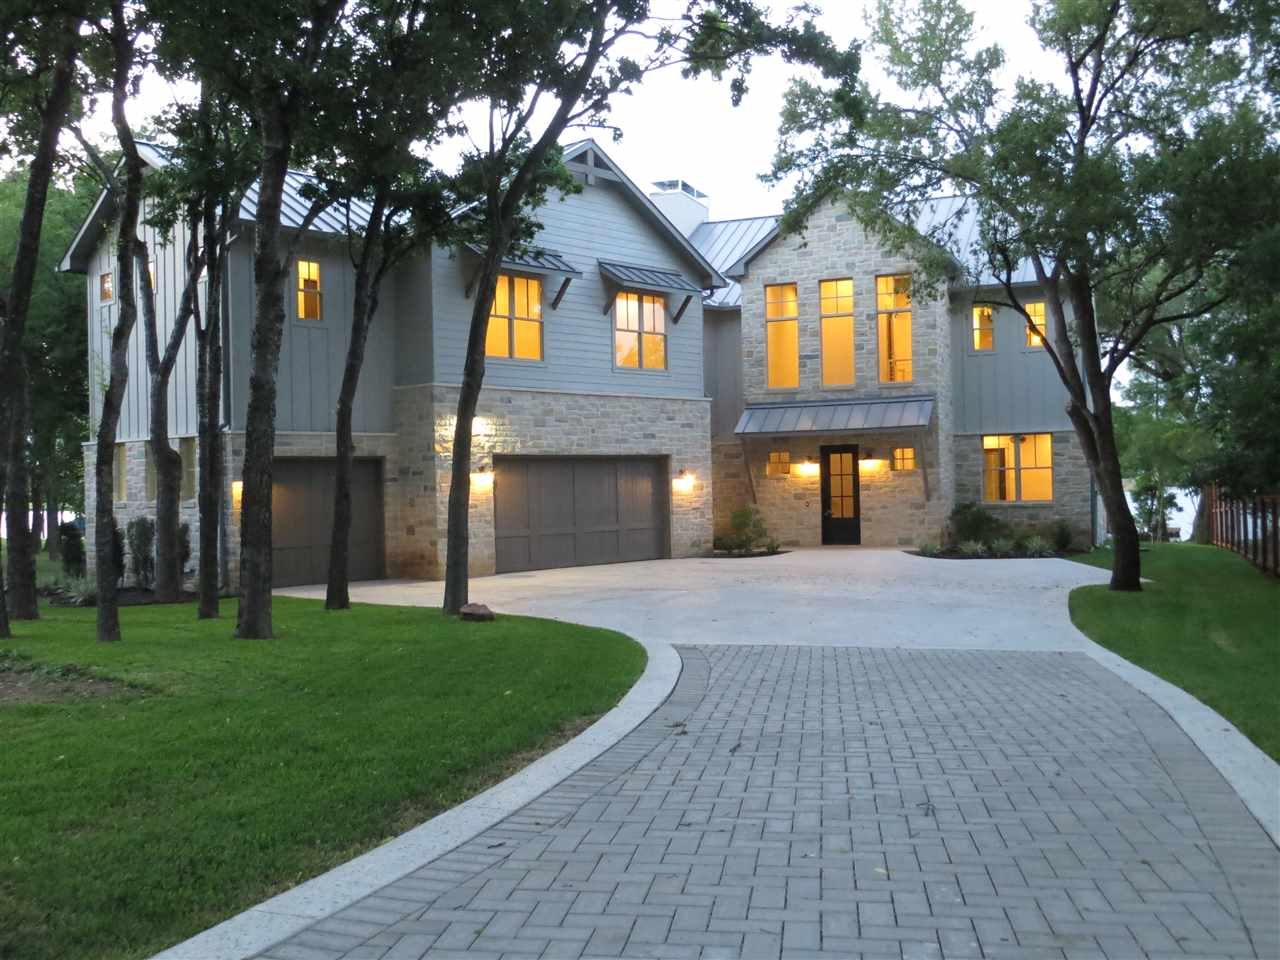 Casa Unifamiliar por un Venta en 130 KINGFISHER Trail Kingsland, Texas 78639 Estados Unidos